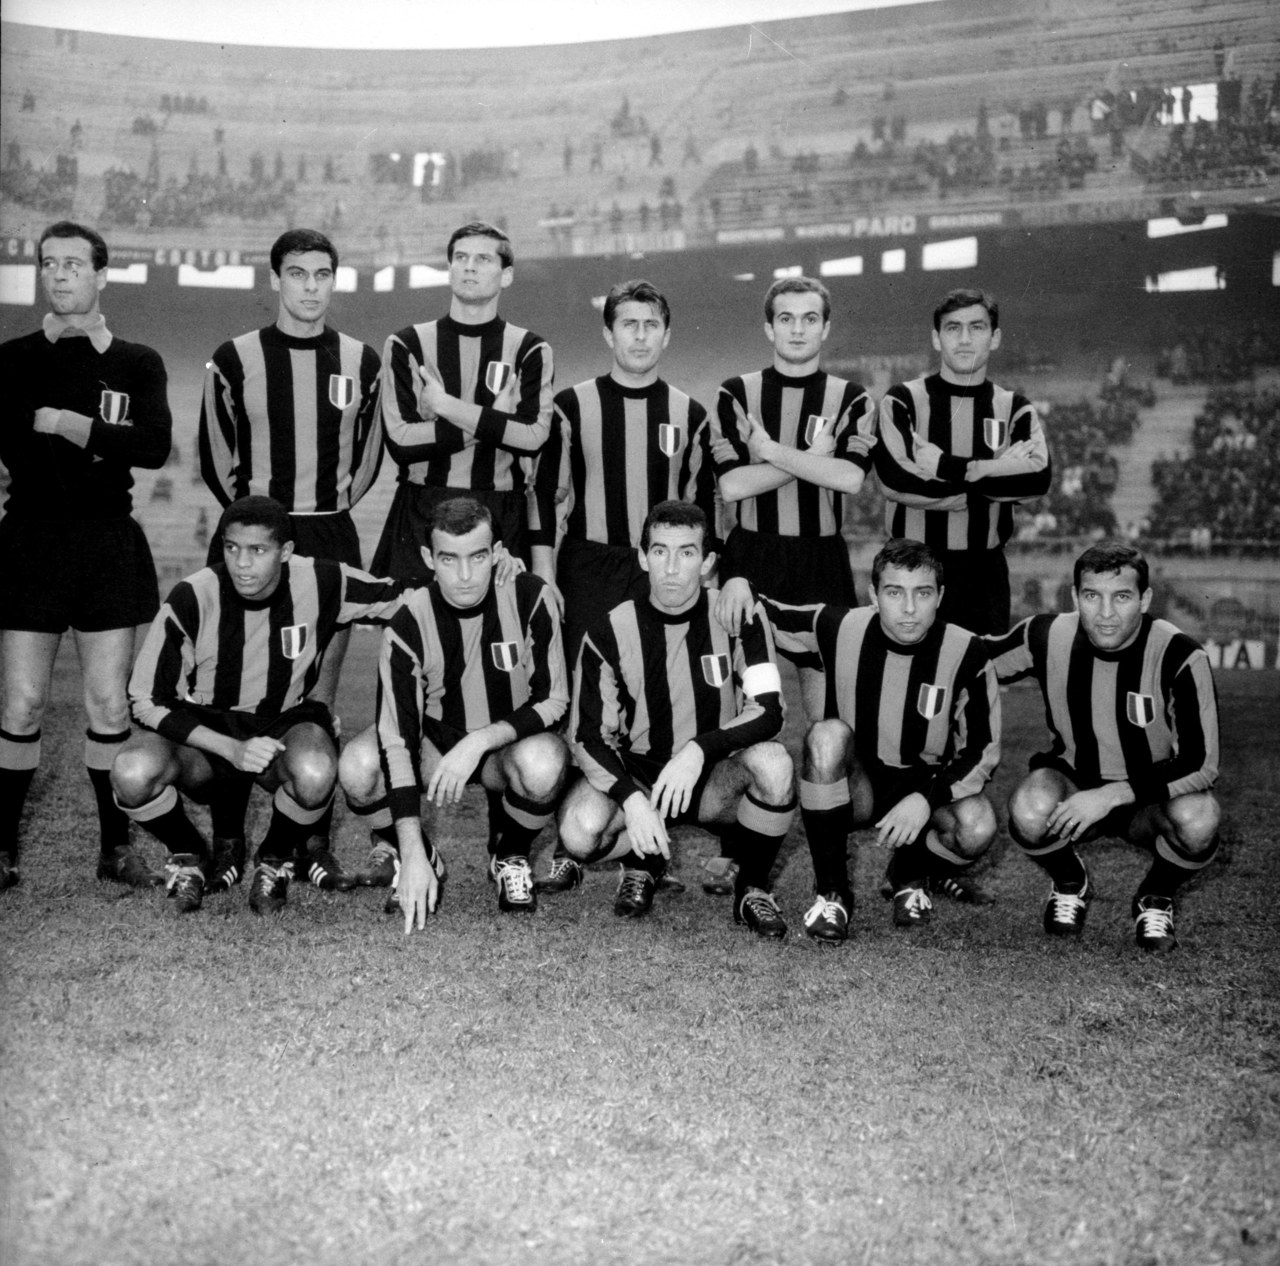 Inter s starters for the 1964 European Cup final against Real